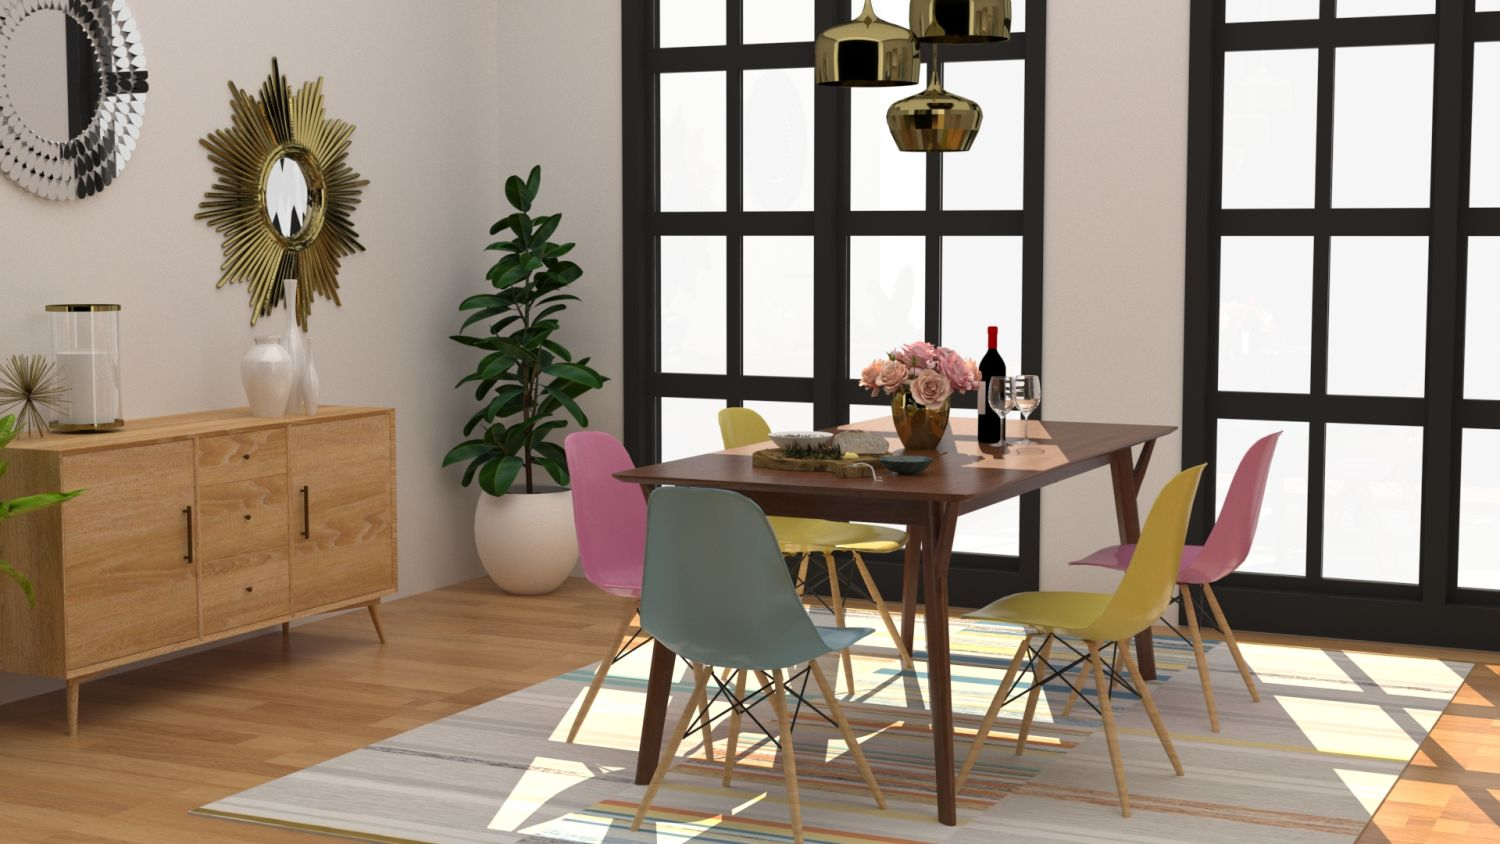 Dining room with mis matched chair in art deco meets mid century modern style